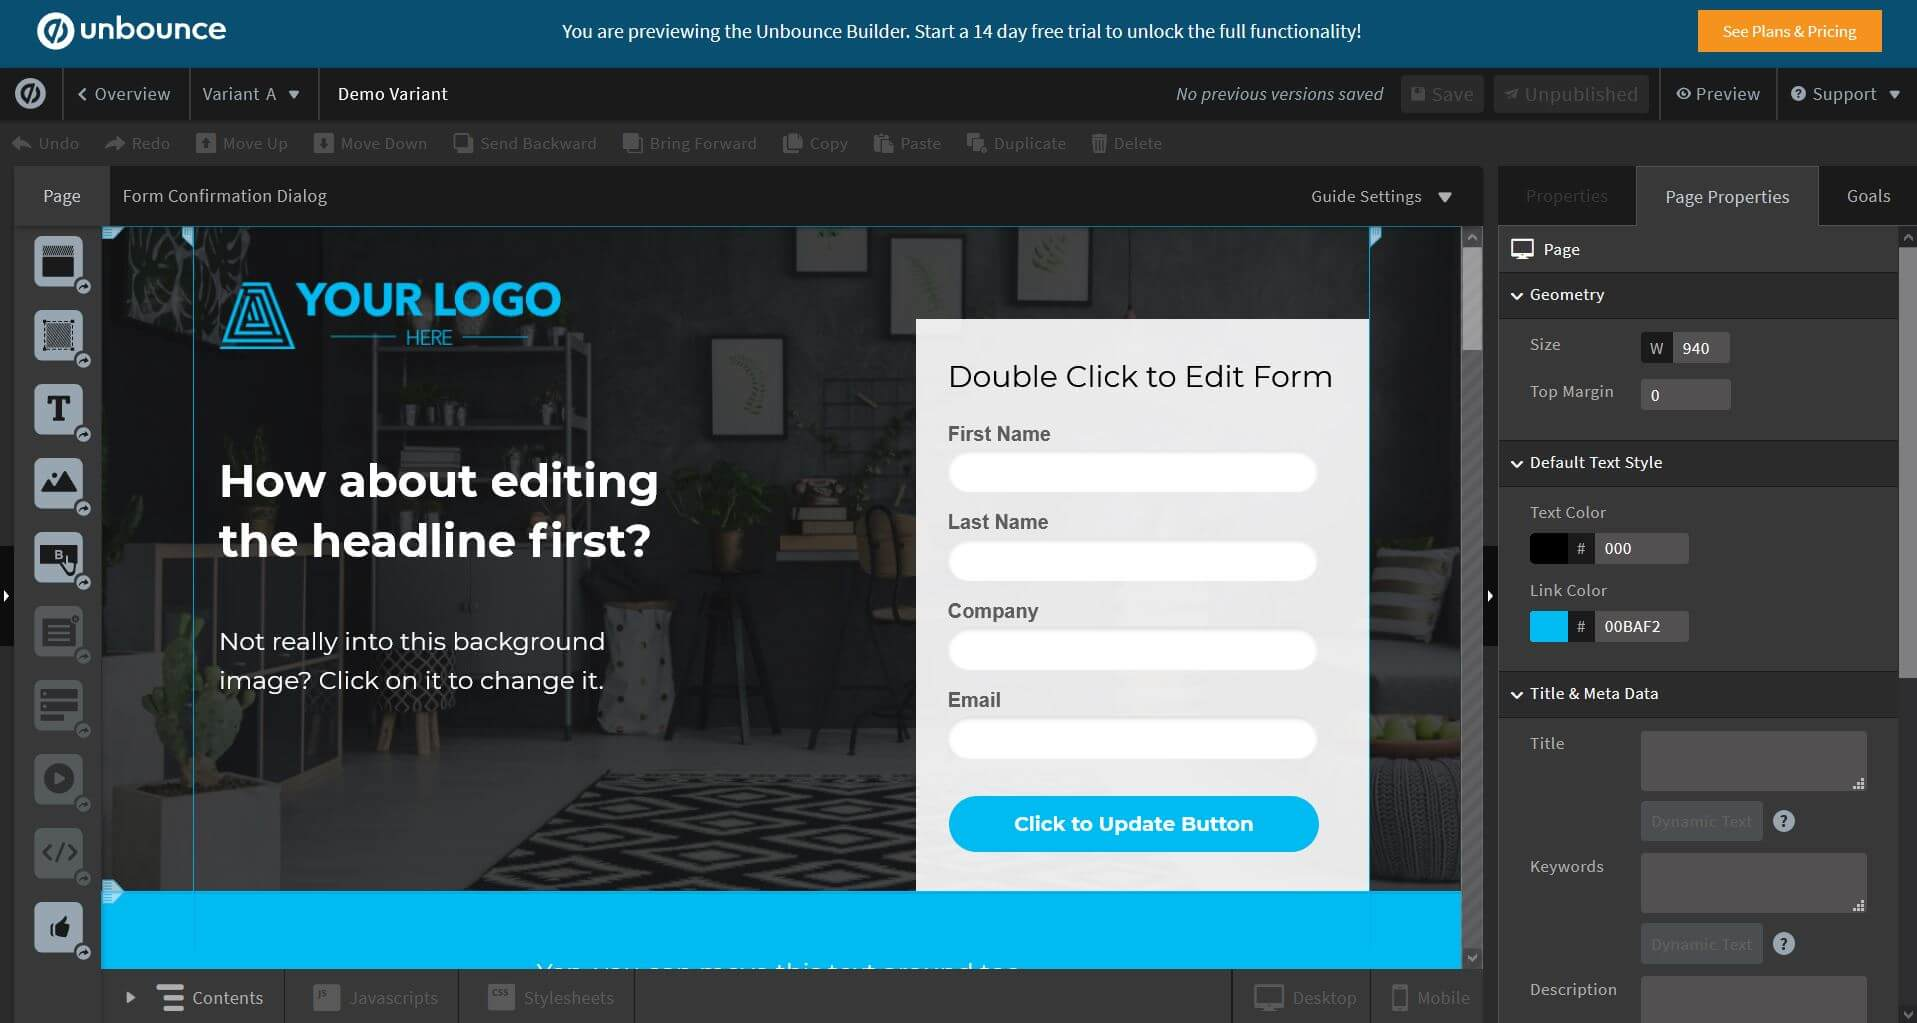 Landing Page - Unbounce